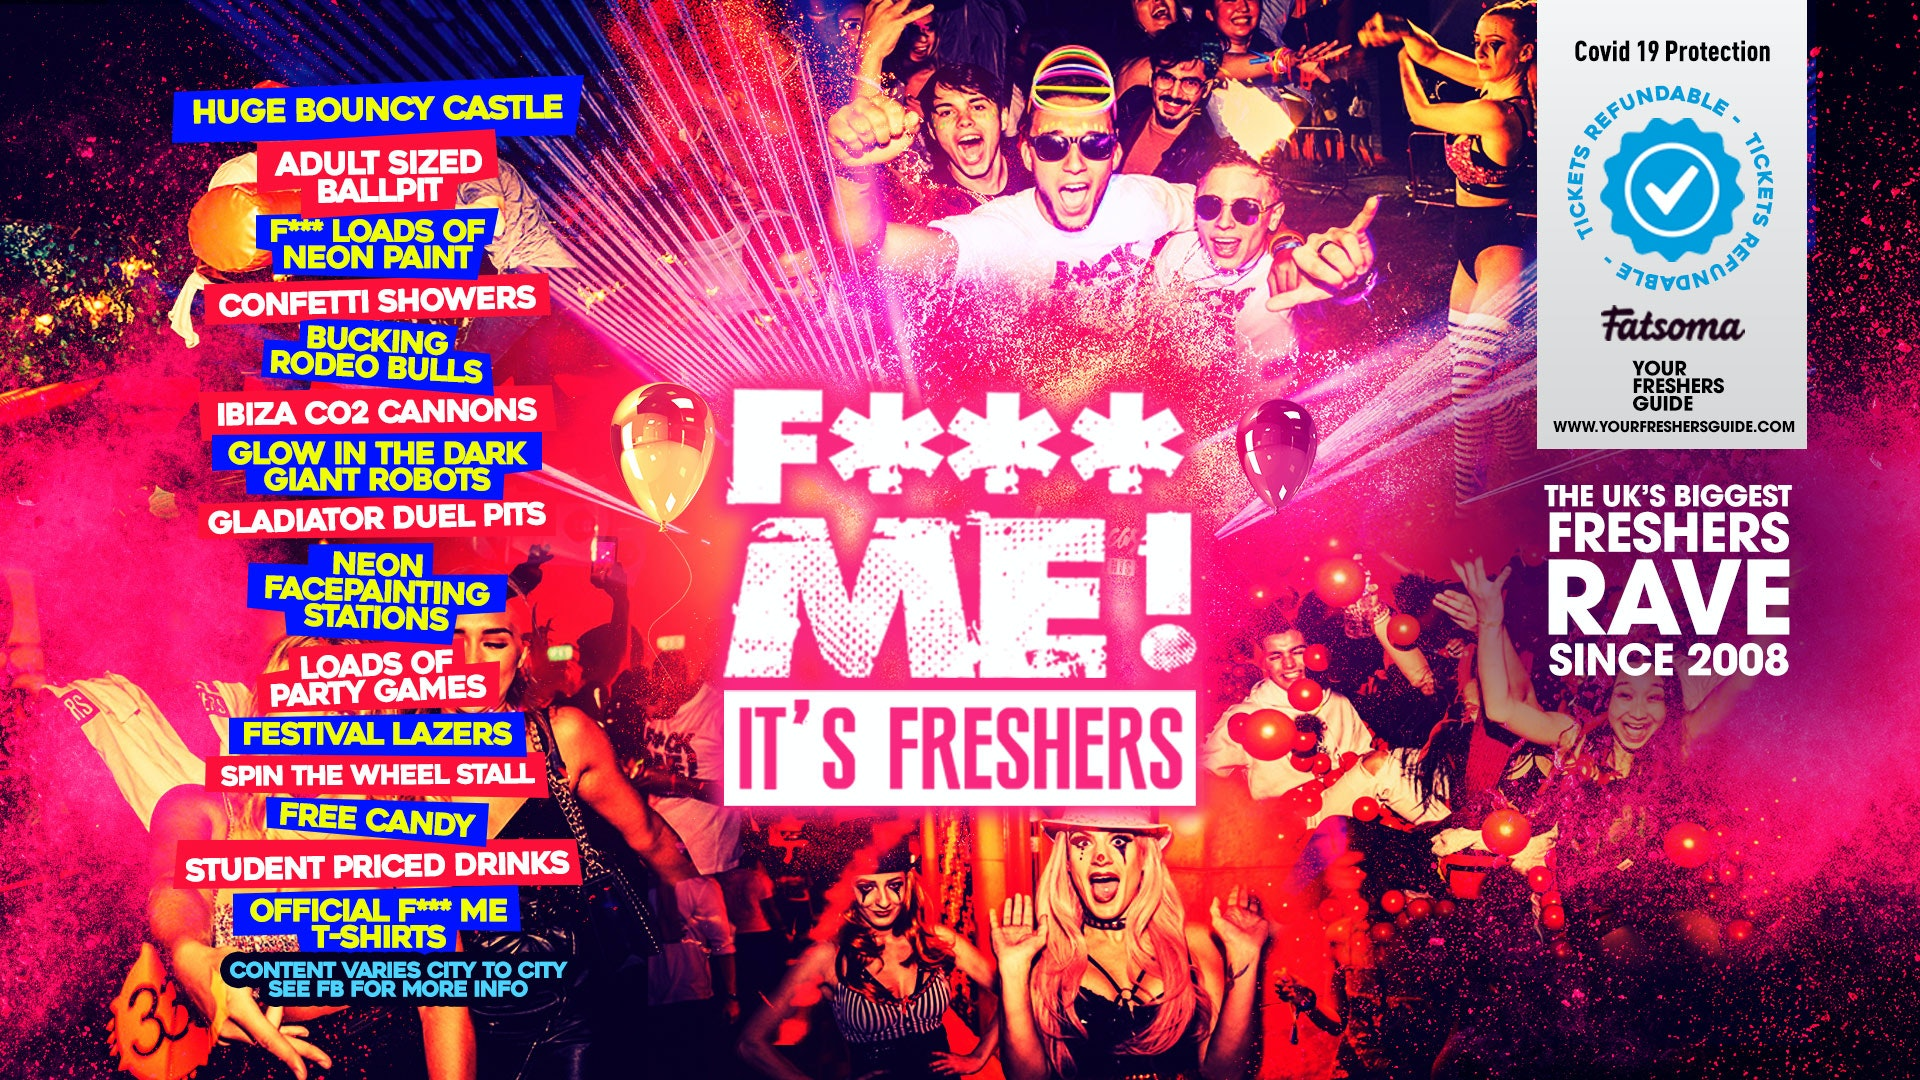 F*CK ME It's Freshers   Brighton Freshers 2021 – Tickets SELLING FAST!